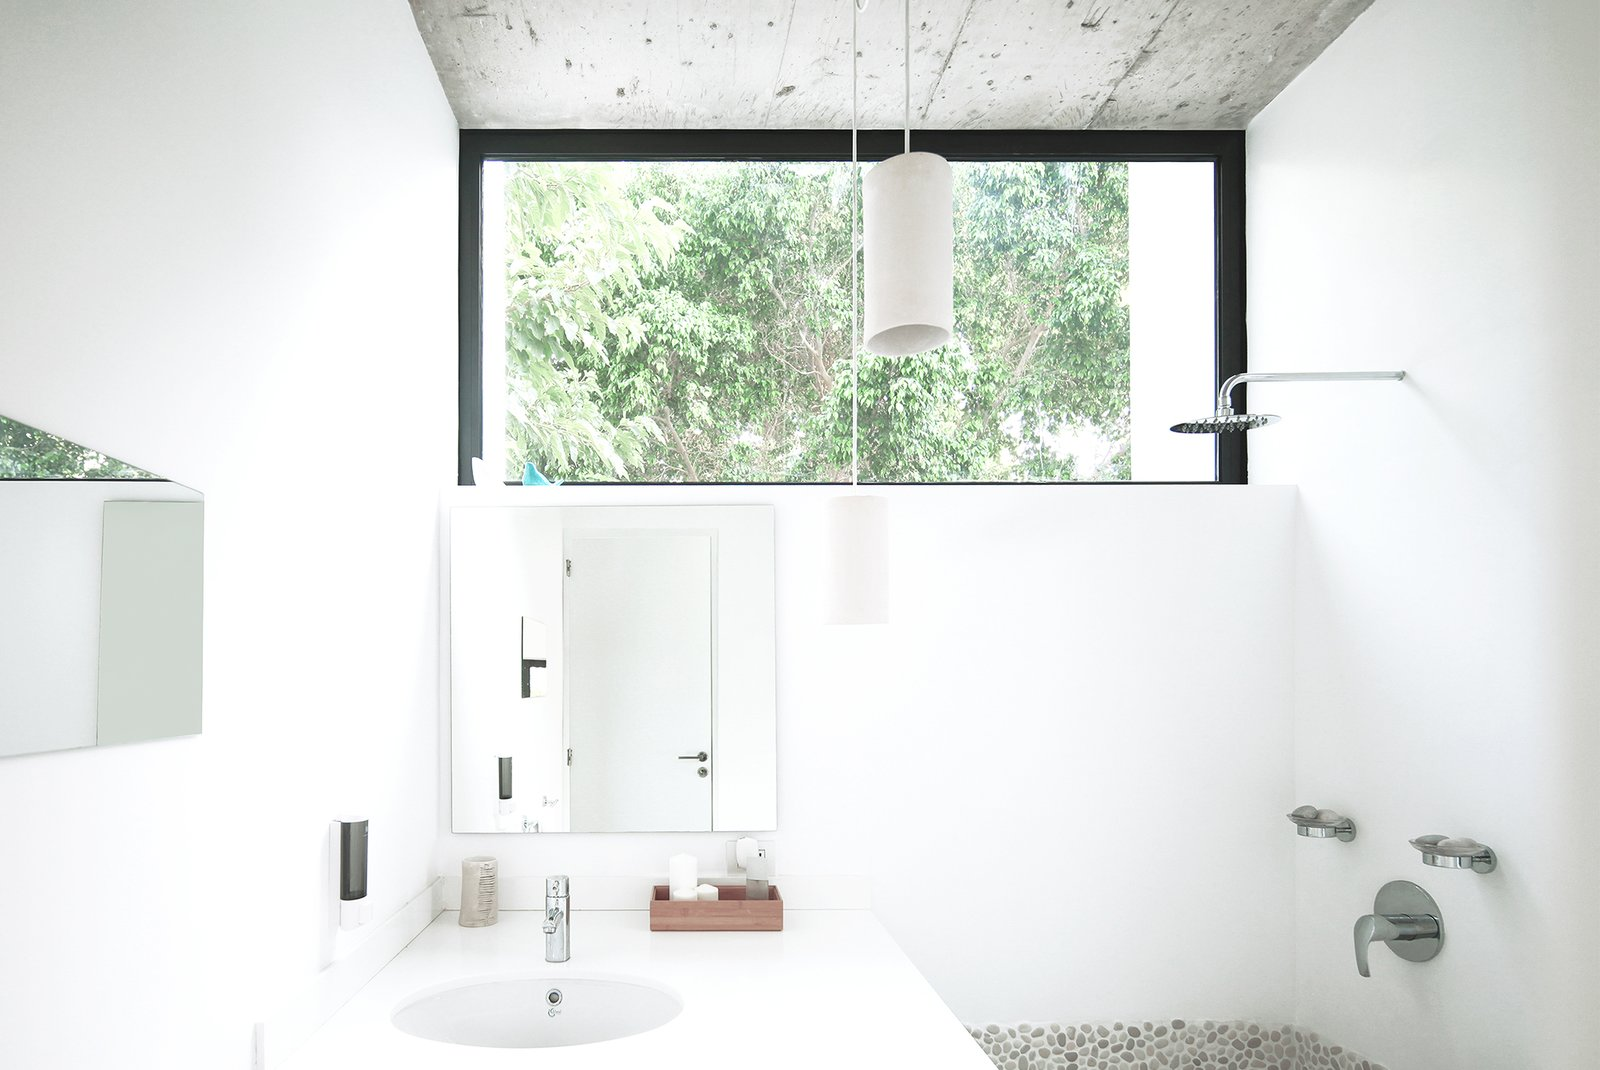 Bath Room, Pendant Lighting, Concrete Wall, Open Shower, and Undermount Sink The bathroom maintains a sense of outdoor living with the large clerestory window.  Photo 9 of 14 in Rent This Modular Micro Cabin For Your Next Grecian Getaway